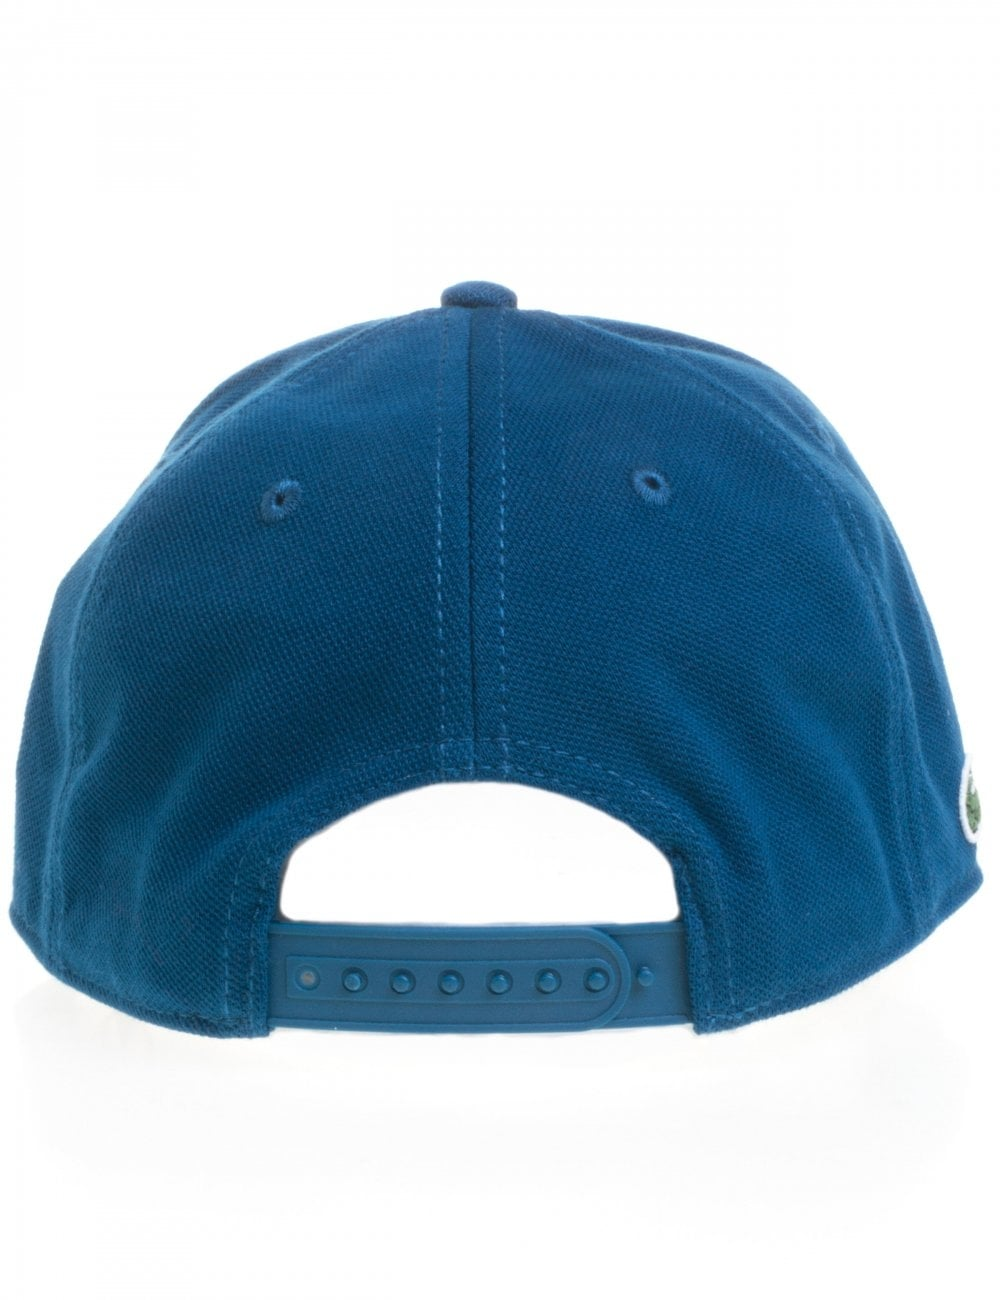 Lacoste Live Cap - Rabane Narcisse - Accessories from Fat Buddha ... dd6653eaad5